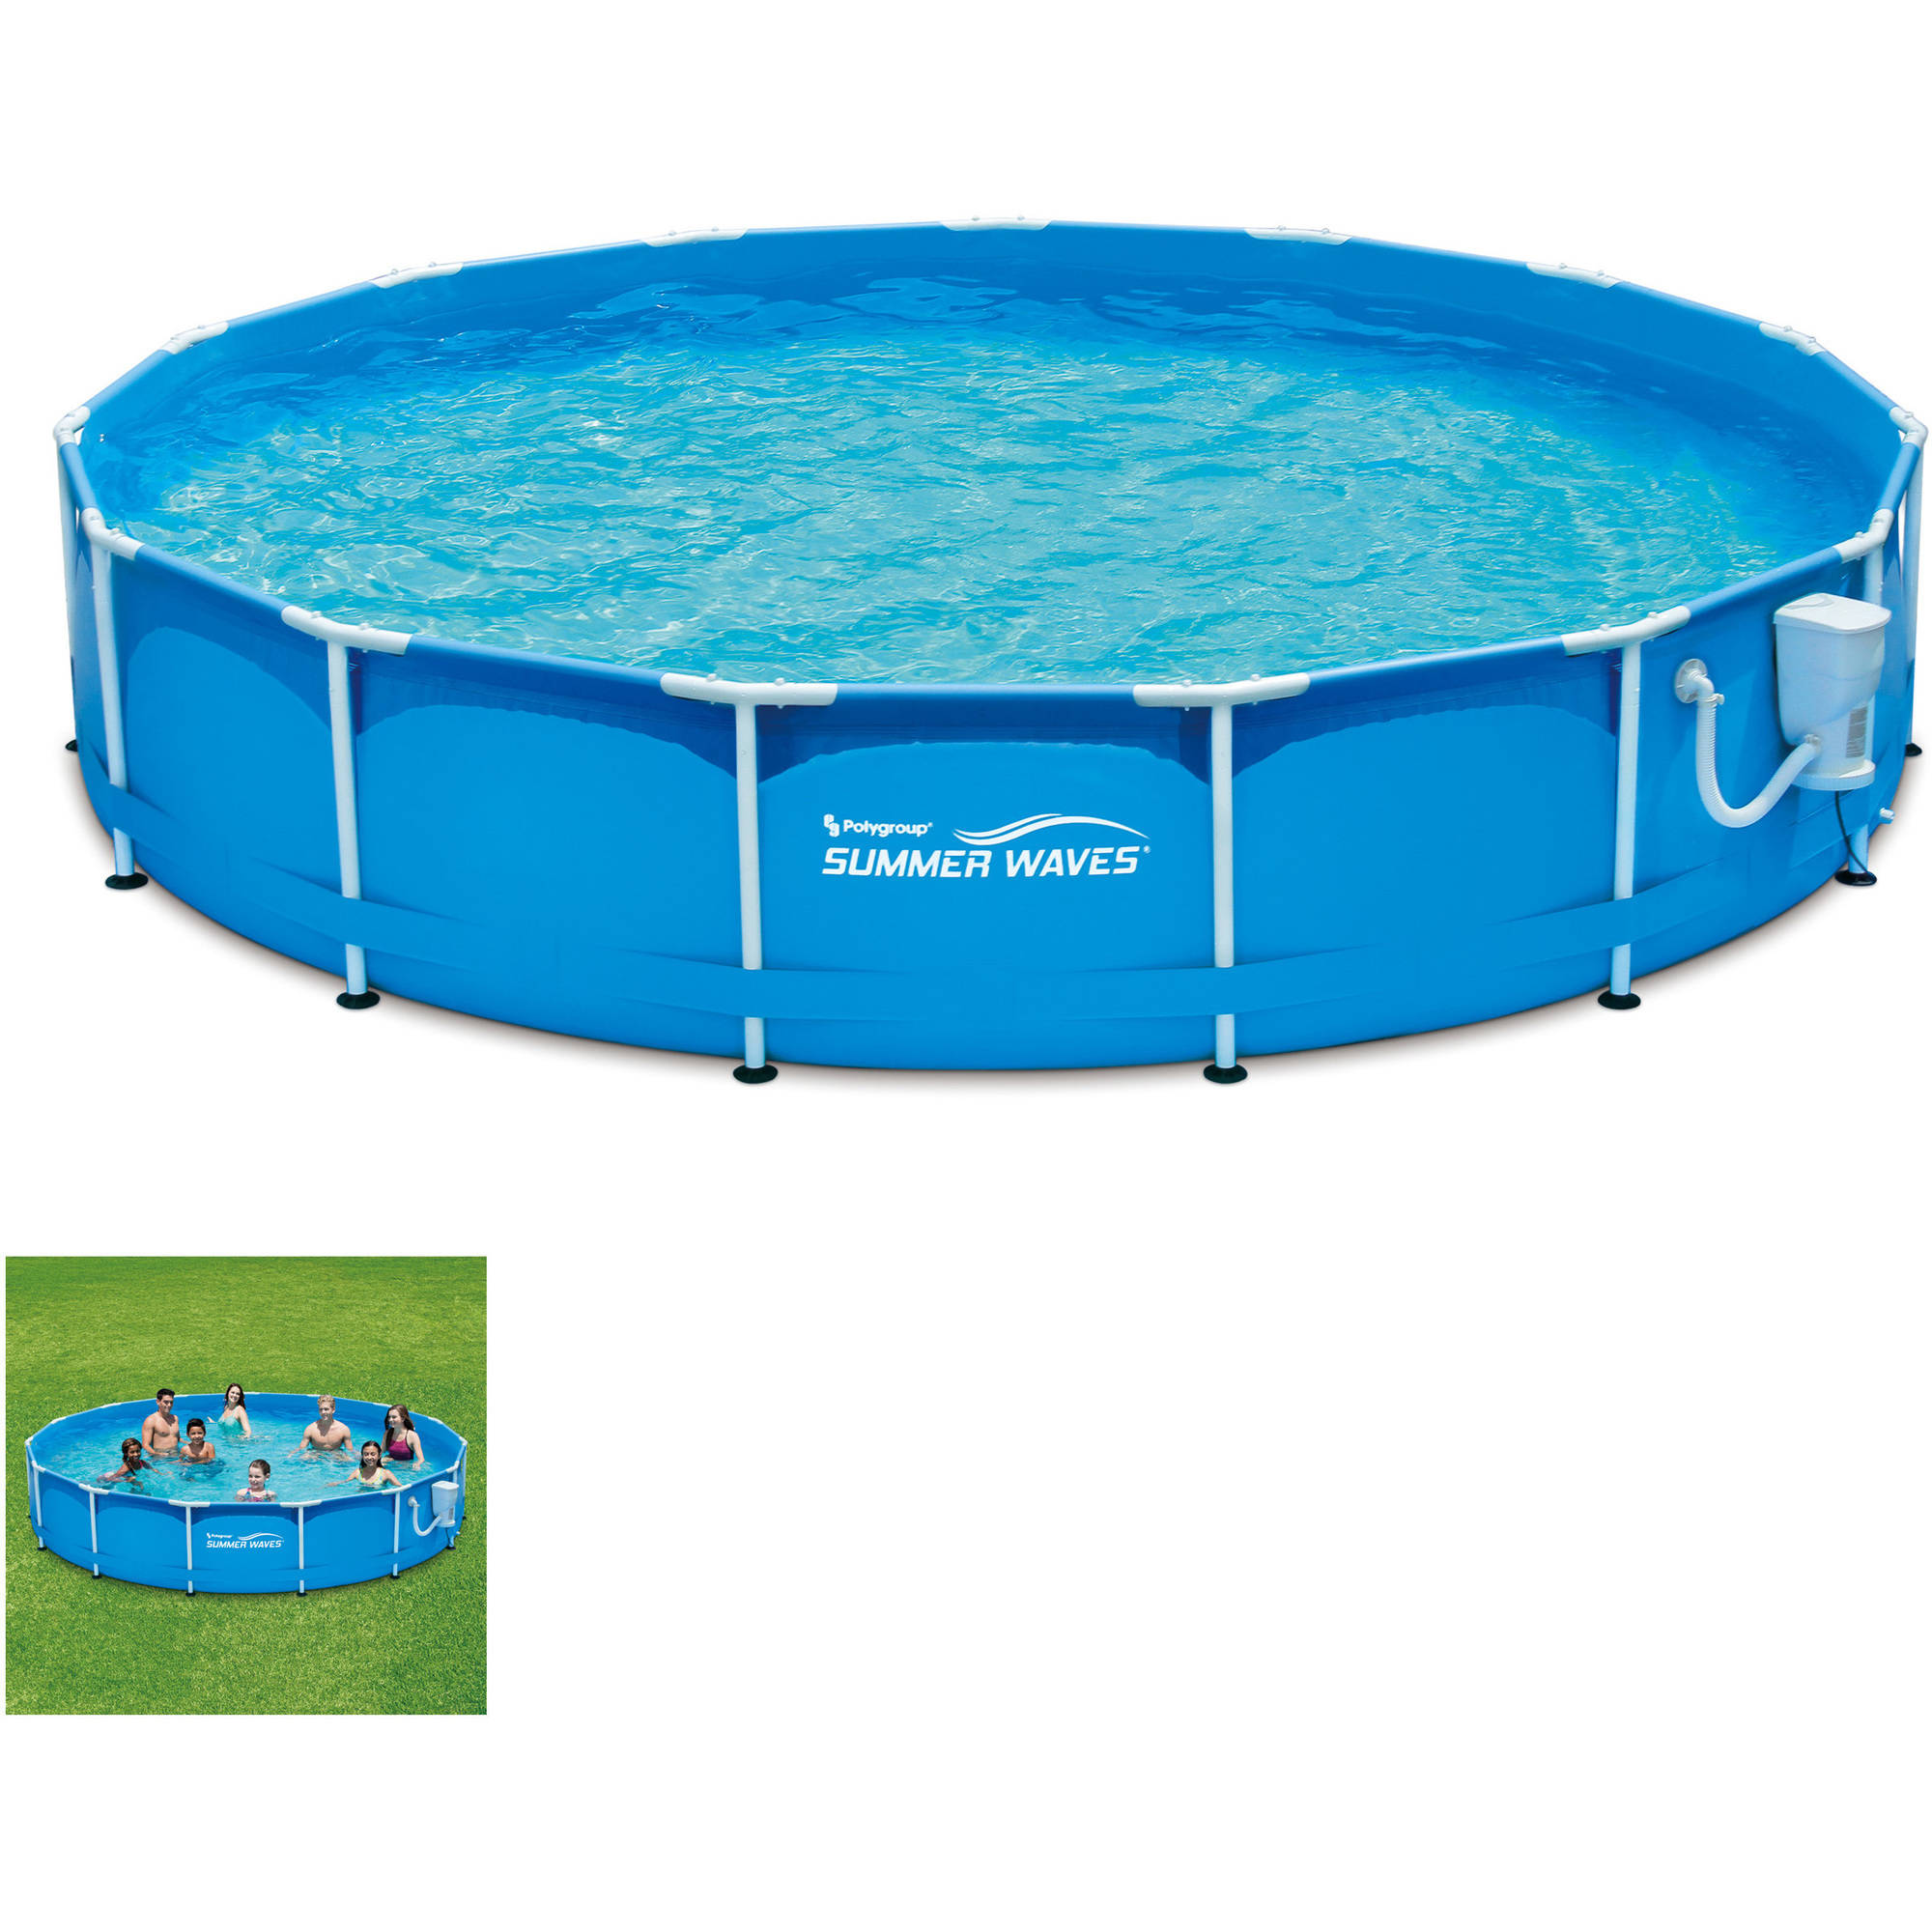 15' Metal Frame Pool Set by POLYGROUP LIMITED MACAO COMMERCIAL OFFSHORE